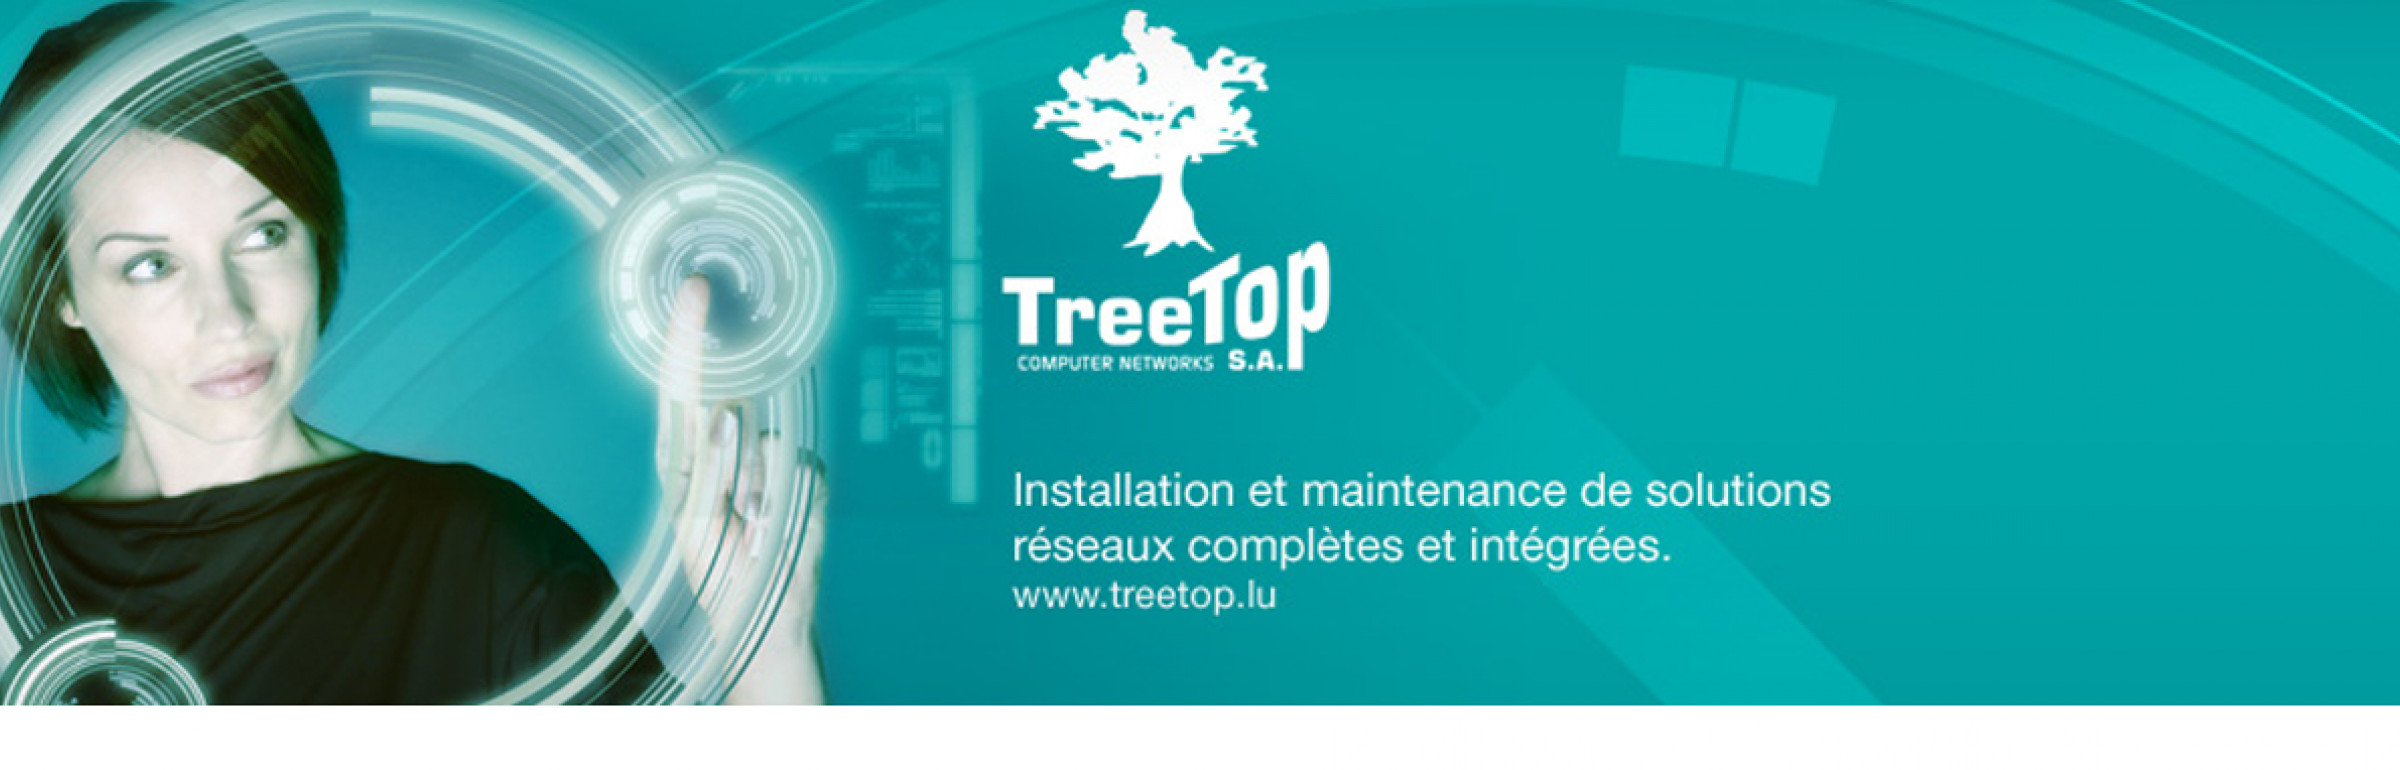 Banner Tree Top S.A.